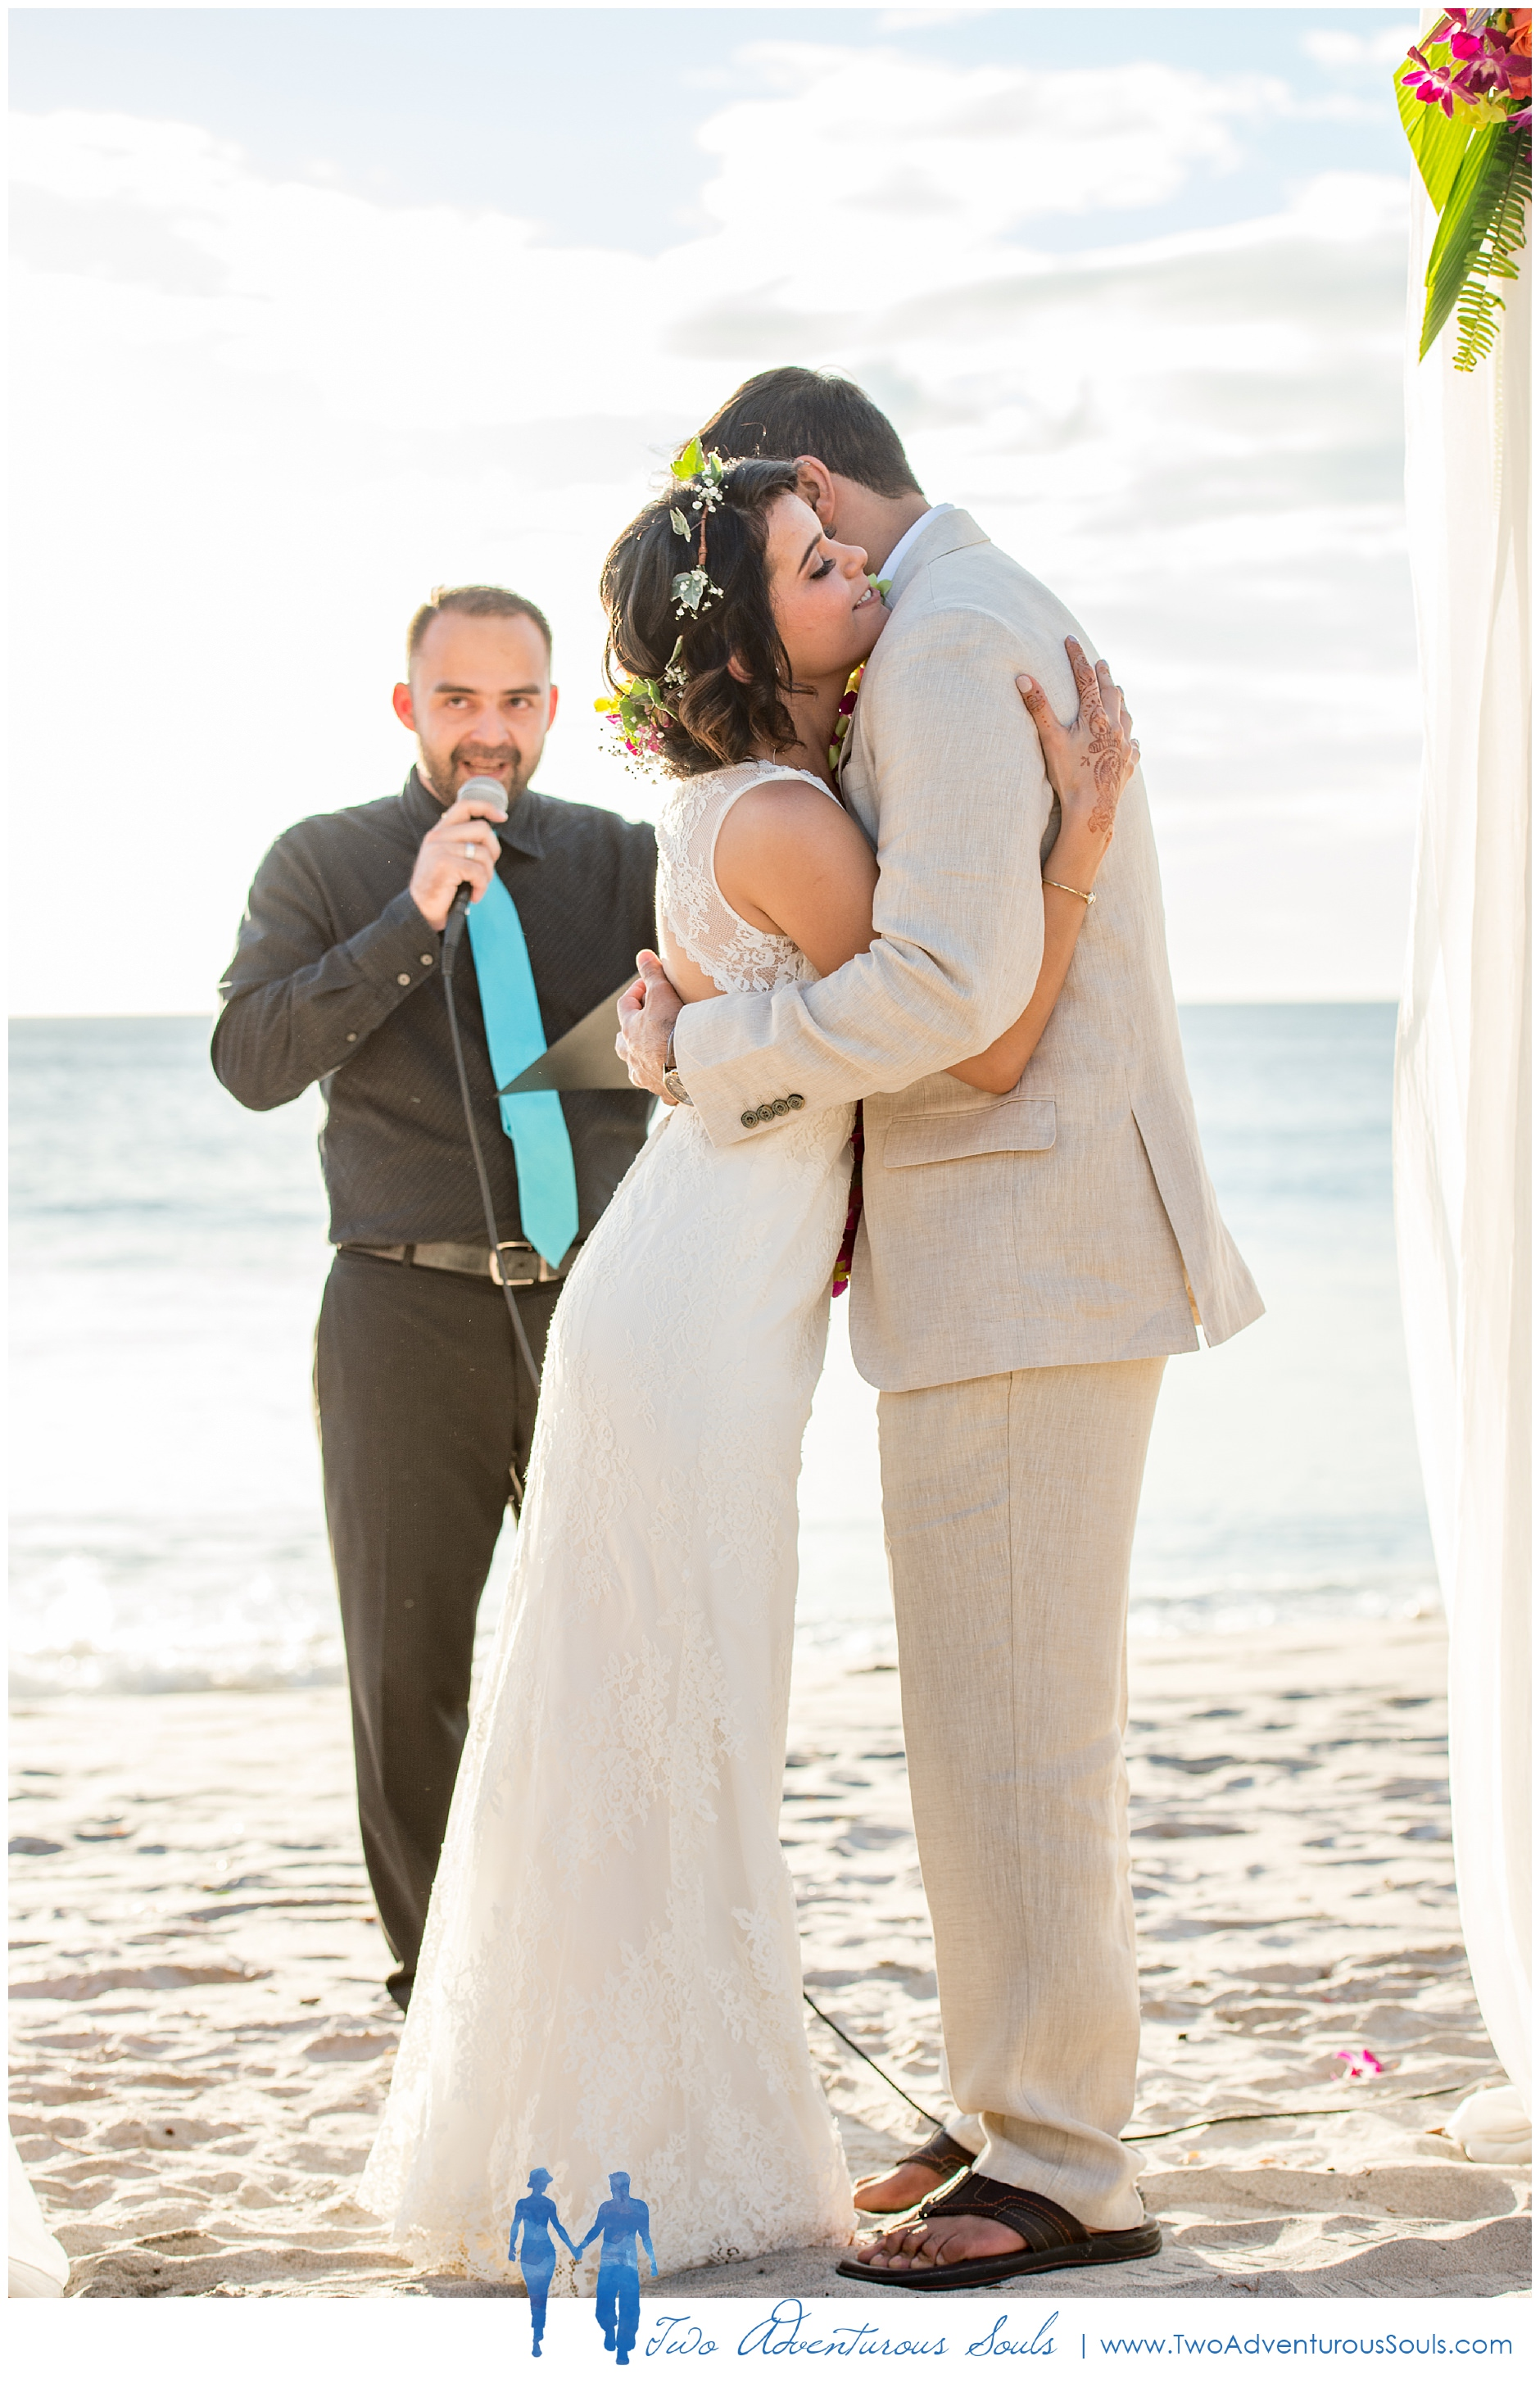 How to get married in Costa Rica, Costa Rica wedding photographers - HTGMICR_0003.jpg